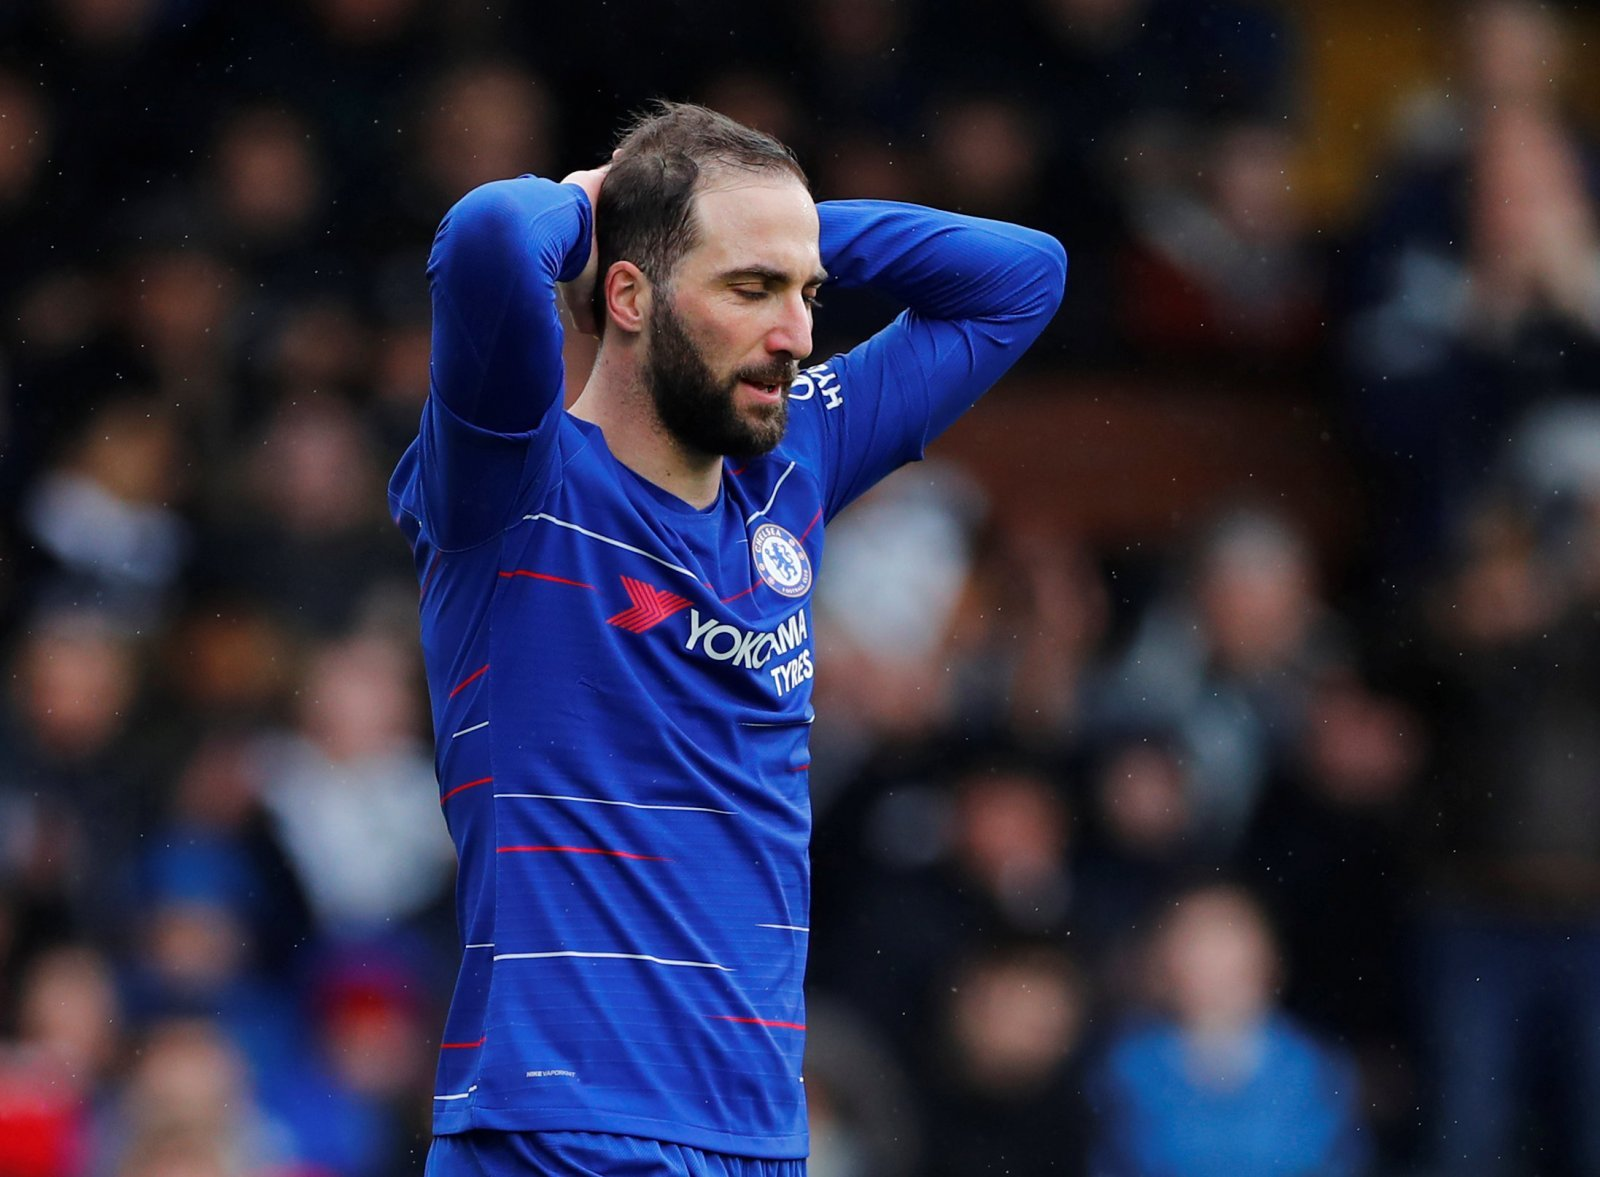 Chelsea: Gonzalo Higuain symbolic of club's flawed policies